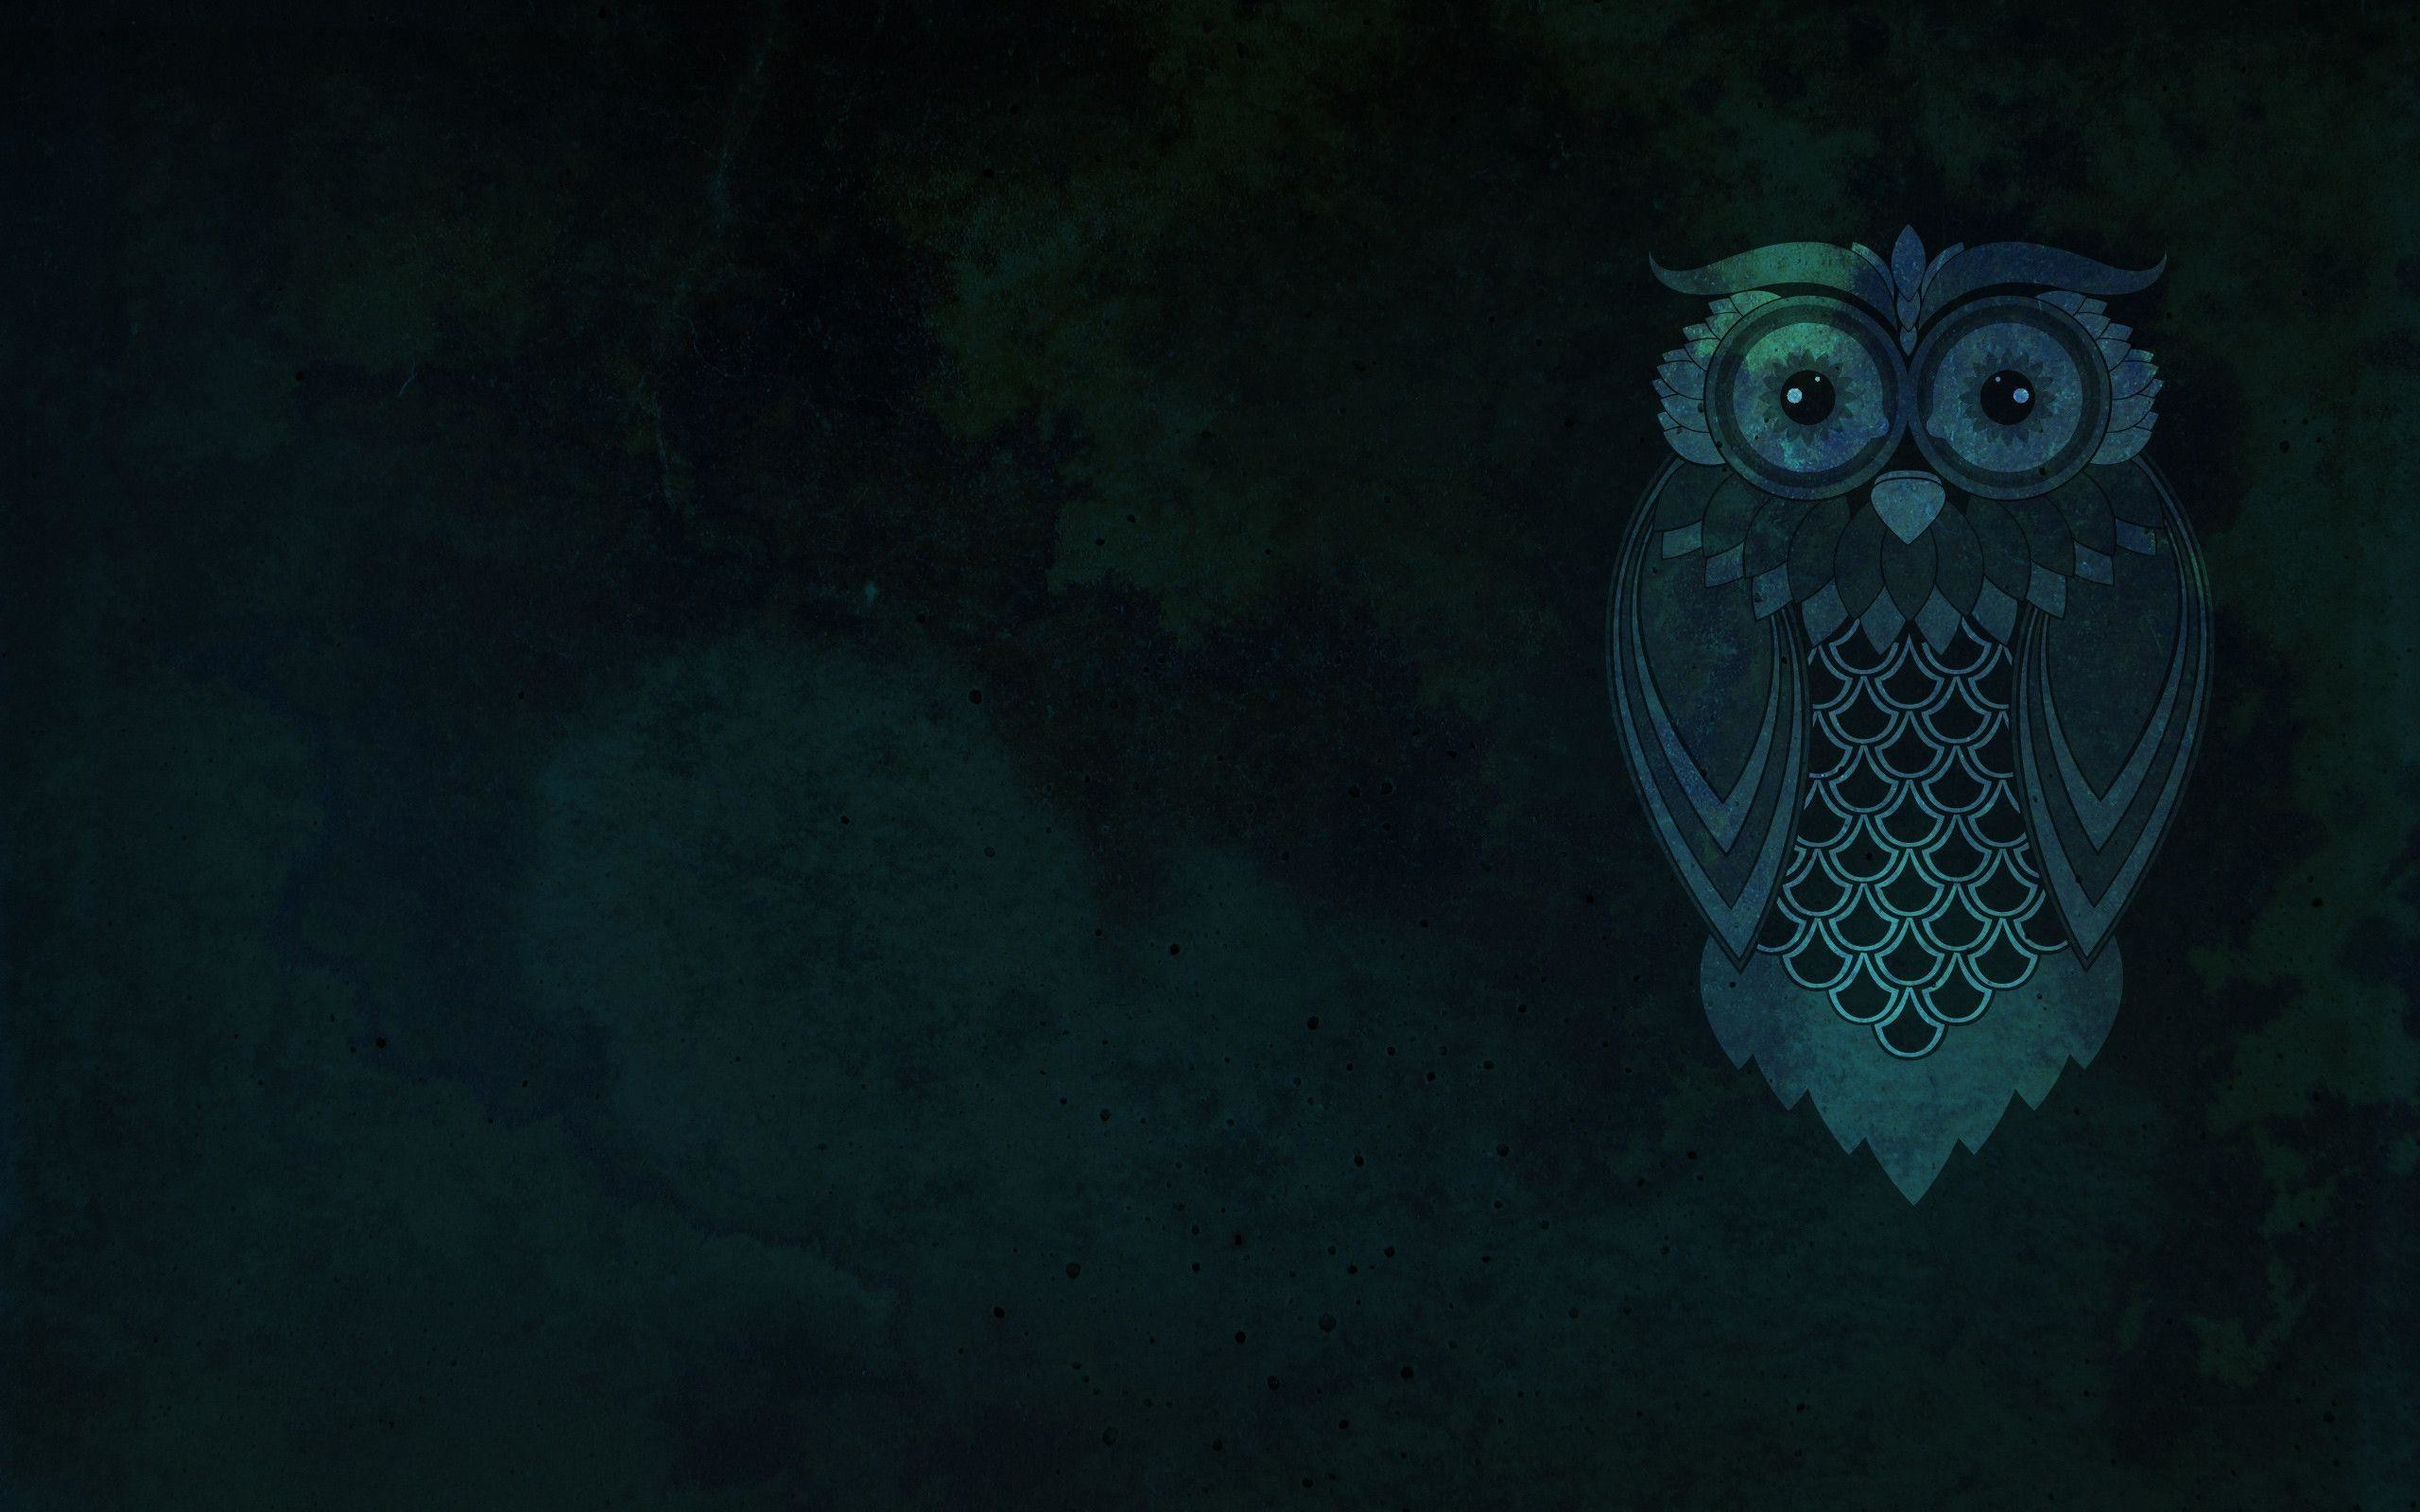 Owl Wallpaper For Computer 76 Pictures